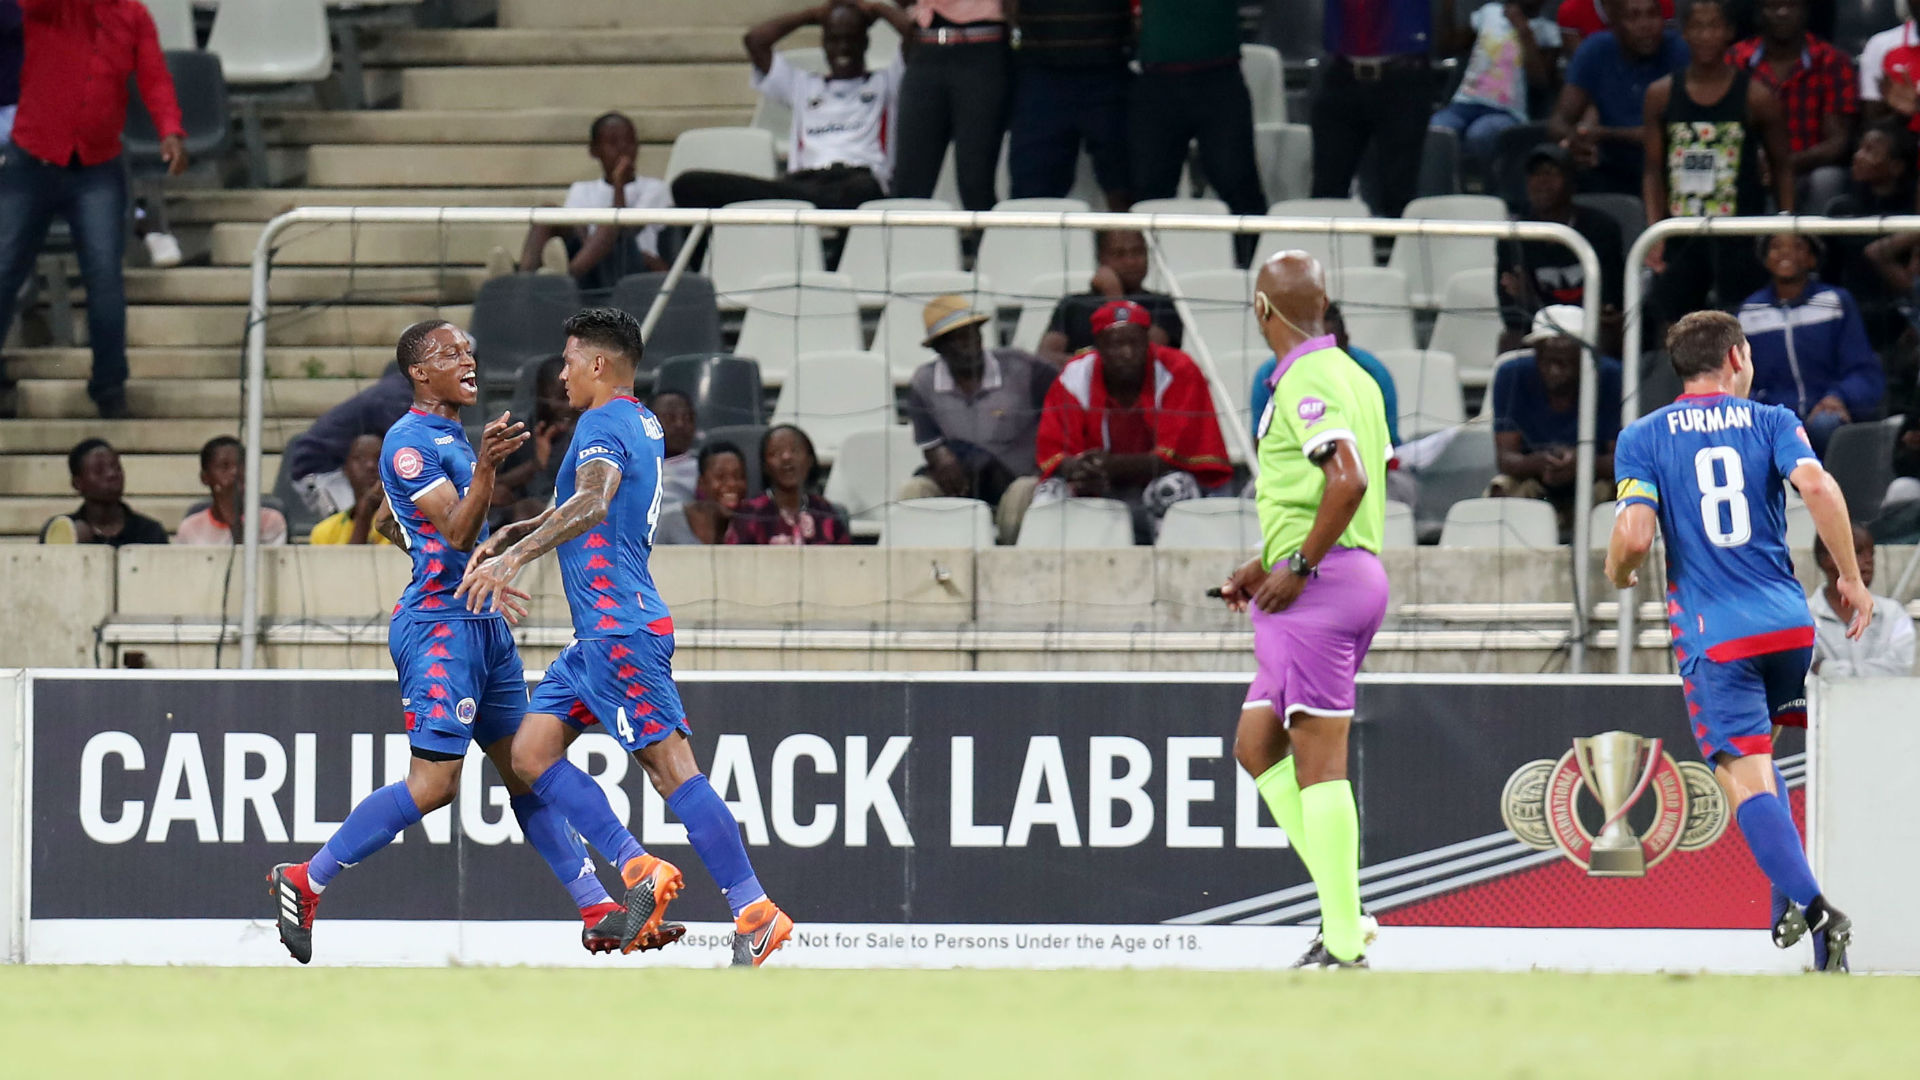 Grant Kekana, Clayton Daniels & Dean Furman, SuperSport United, February 2019